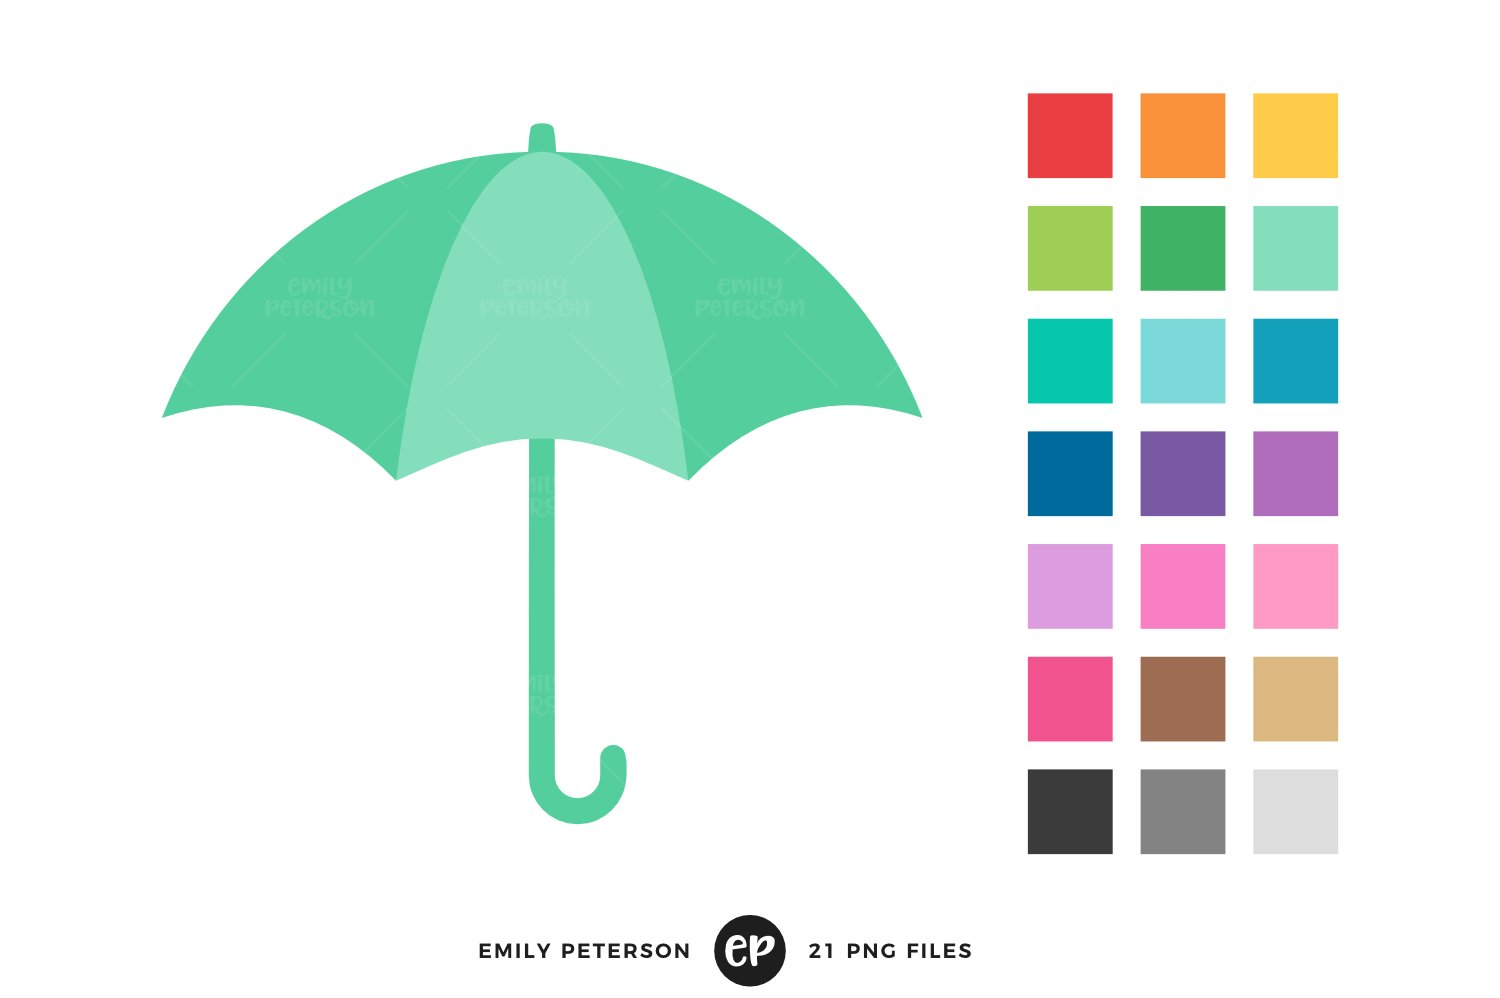 Aqua umbrella clipart images image transparent download Umbrella Clipart image transparent download